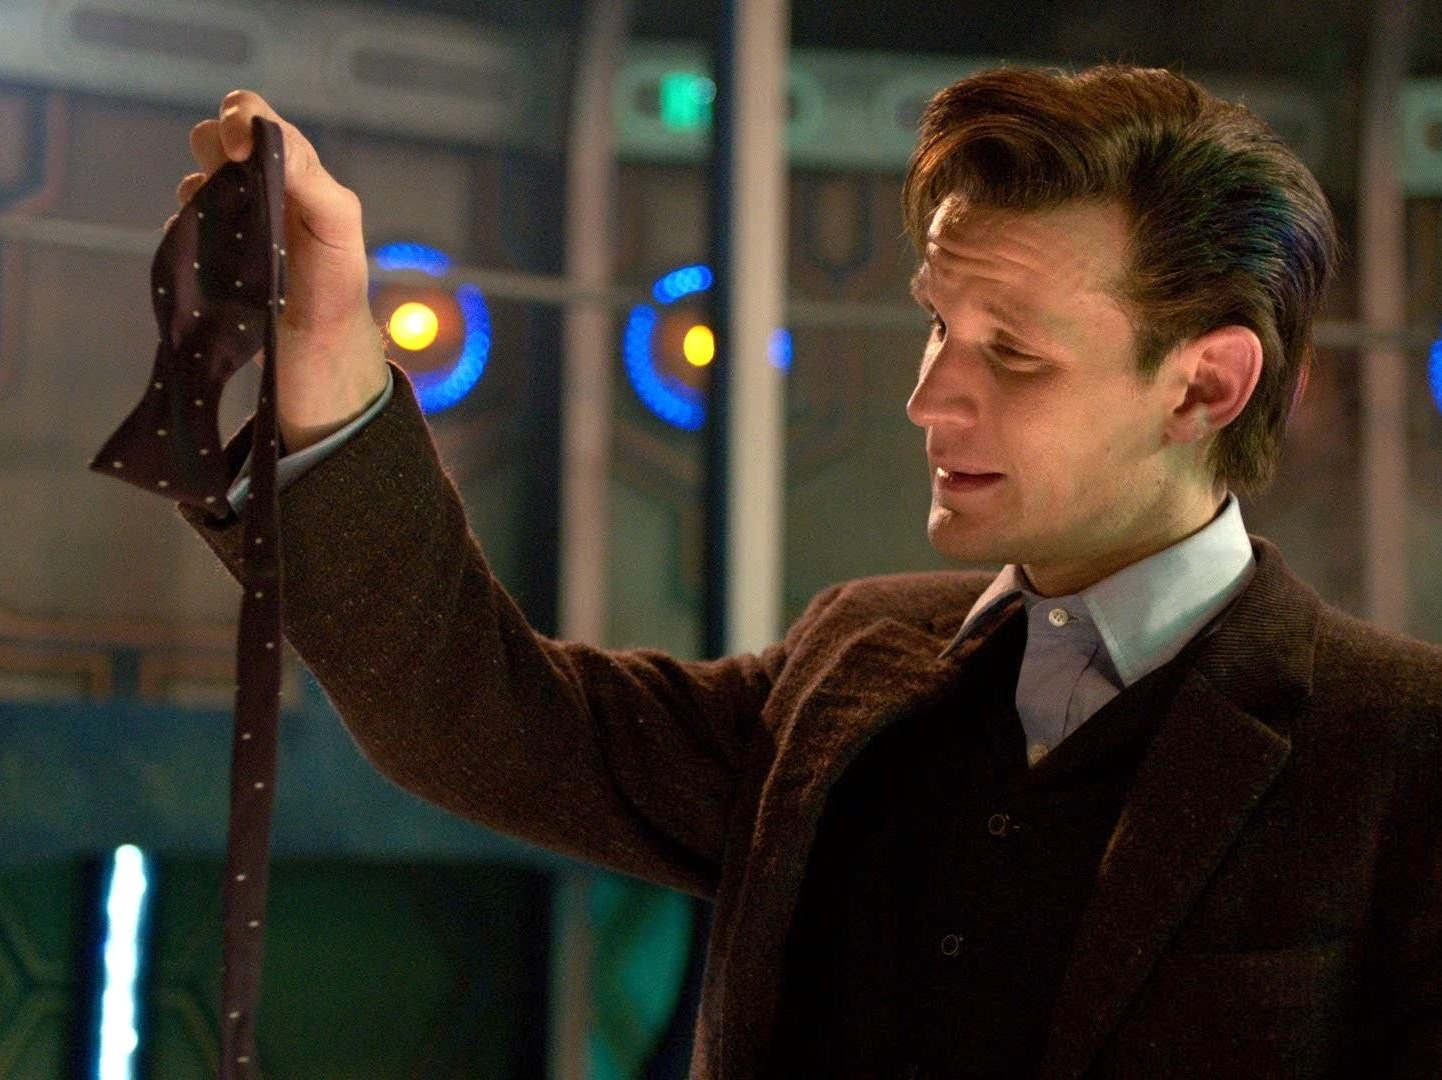 'Doctor Who' Season 11 Might Have a New Doctor